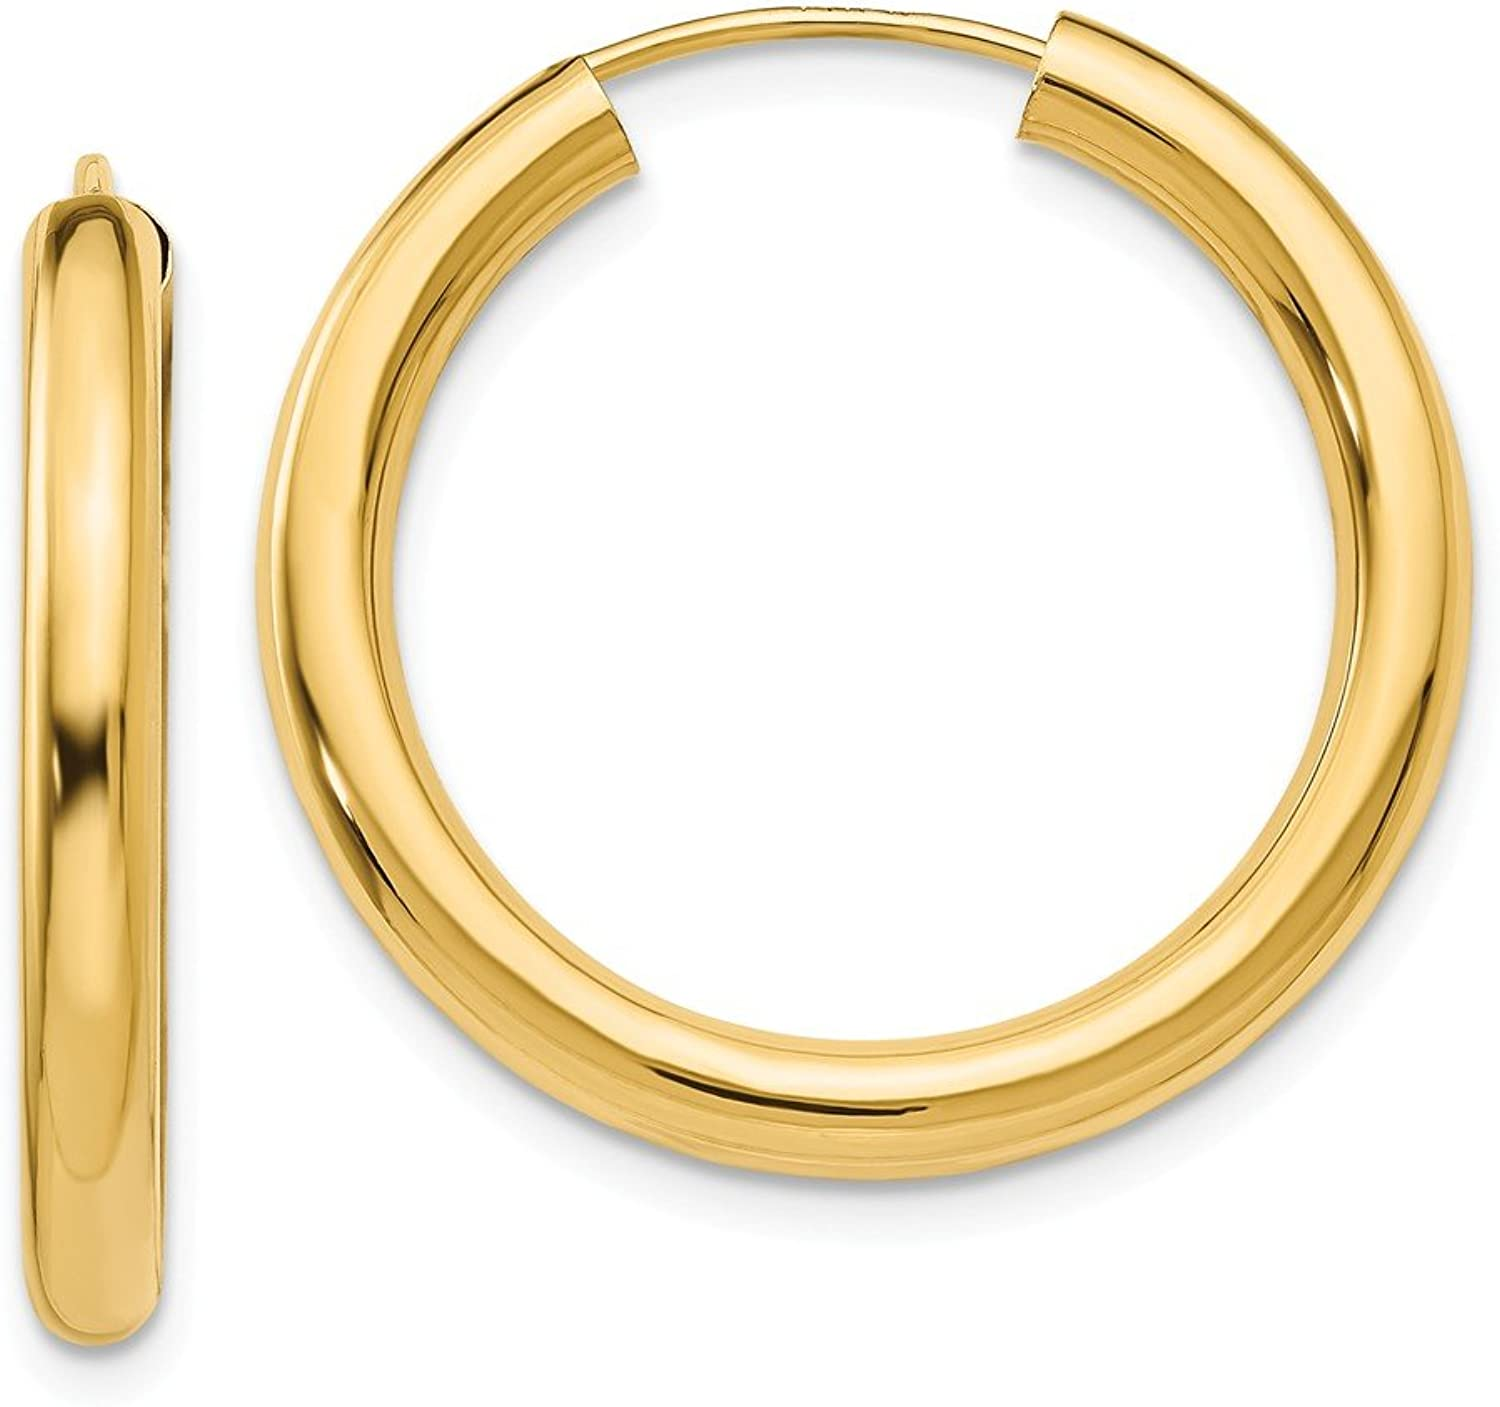 Beautiful Yellow gold 14K Yellowgold 14k Polished Endless Tube Hoop Earrings